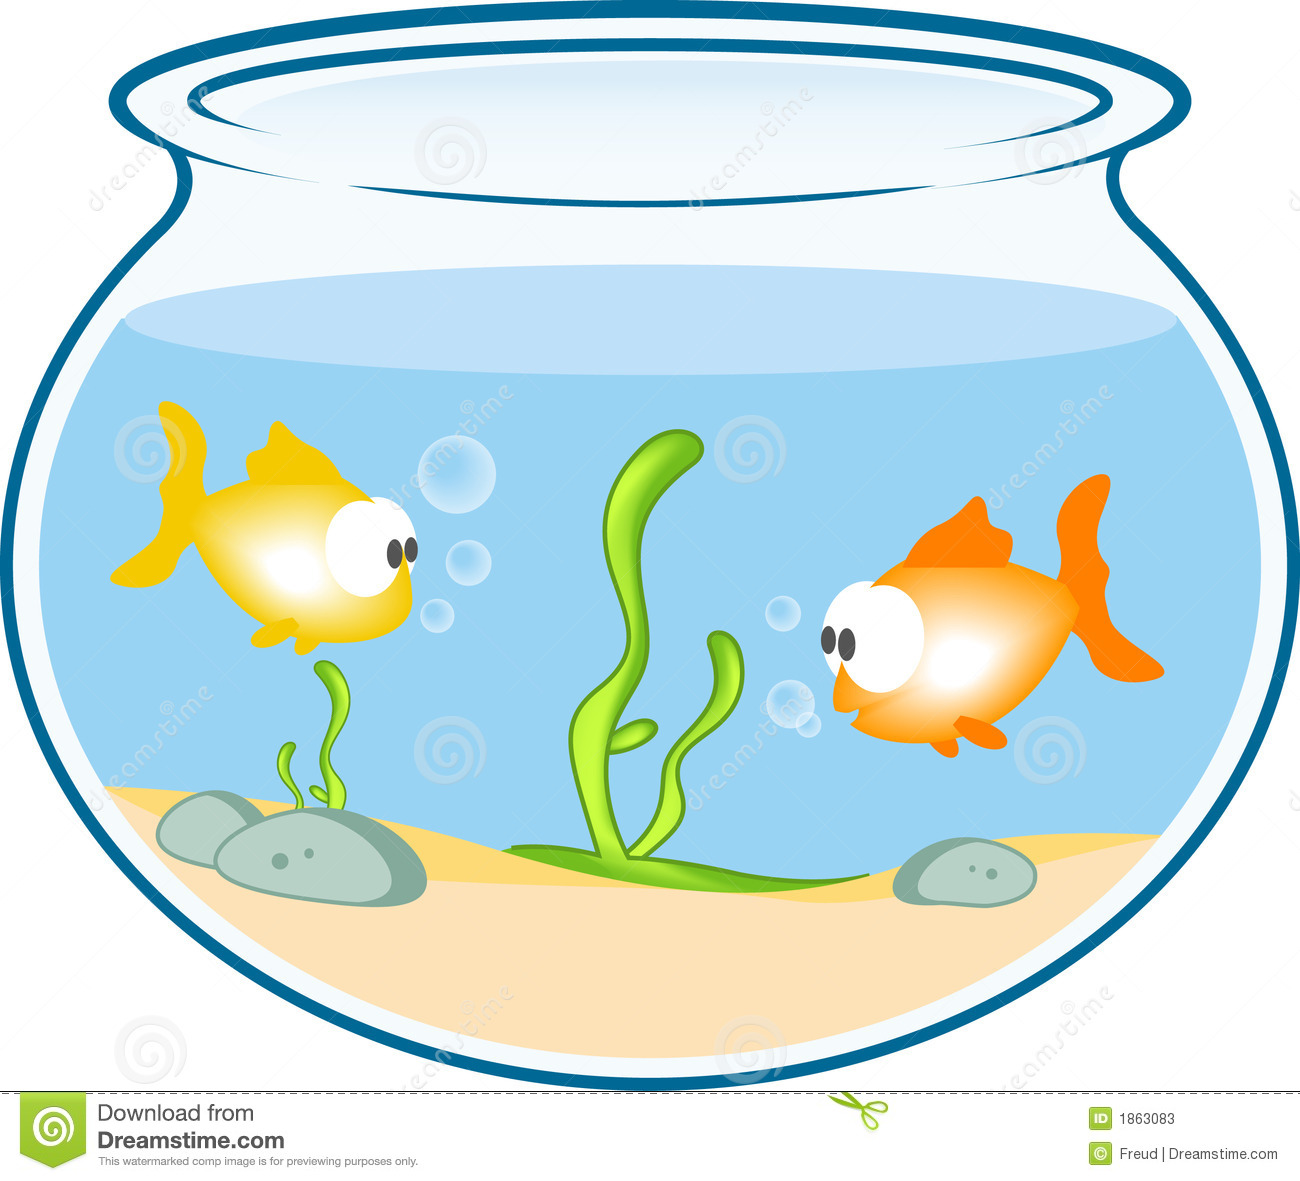 Free download best on. Fishbowl clipart turtle tank